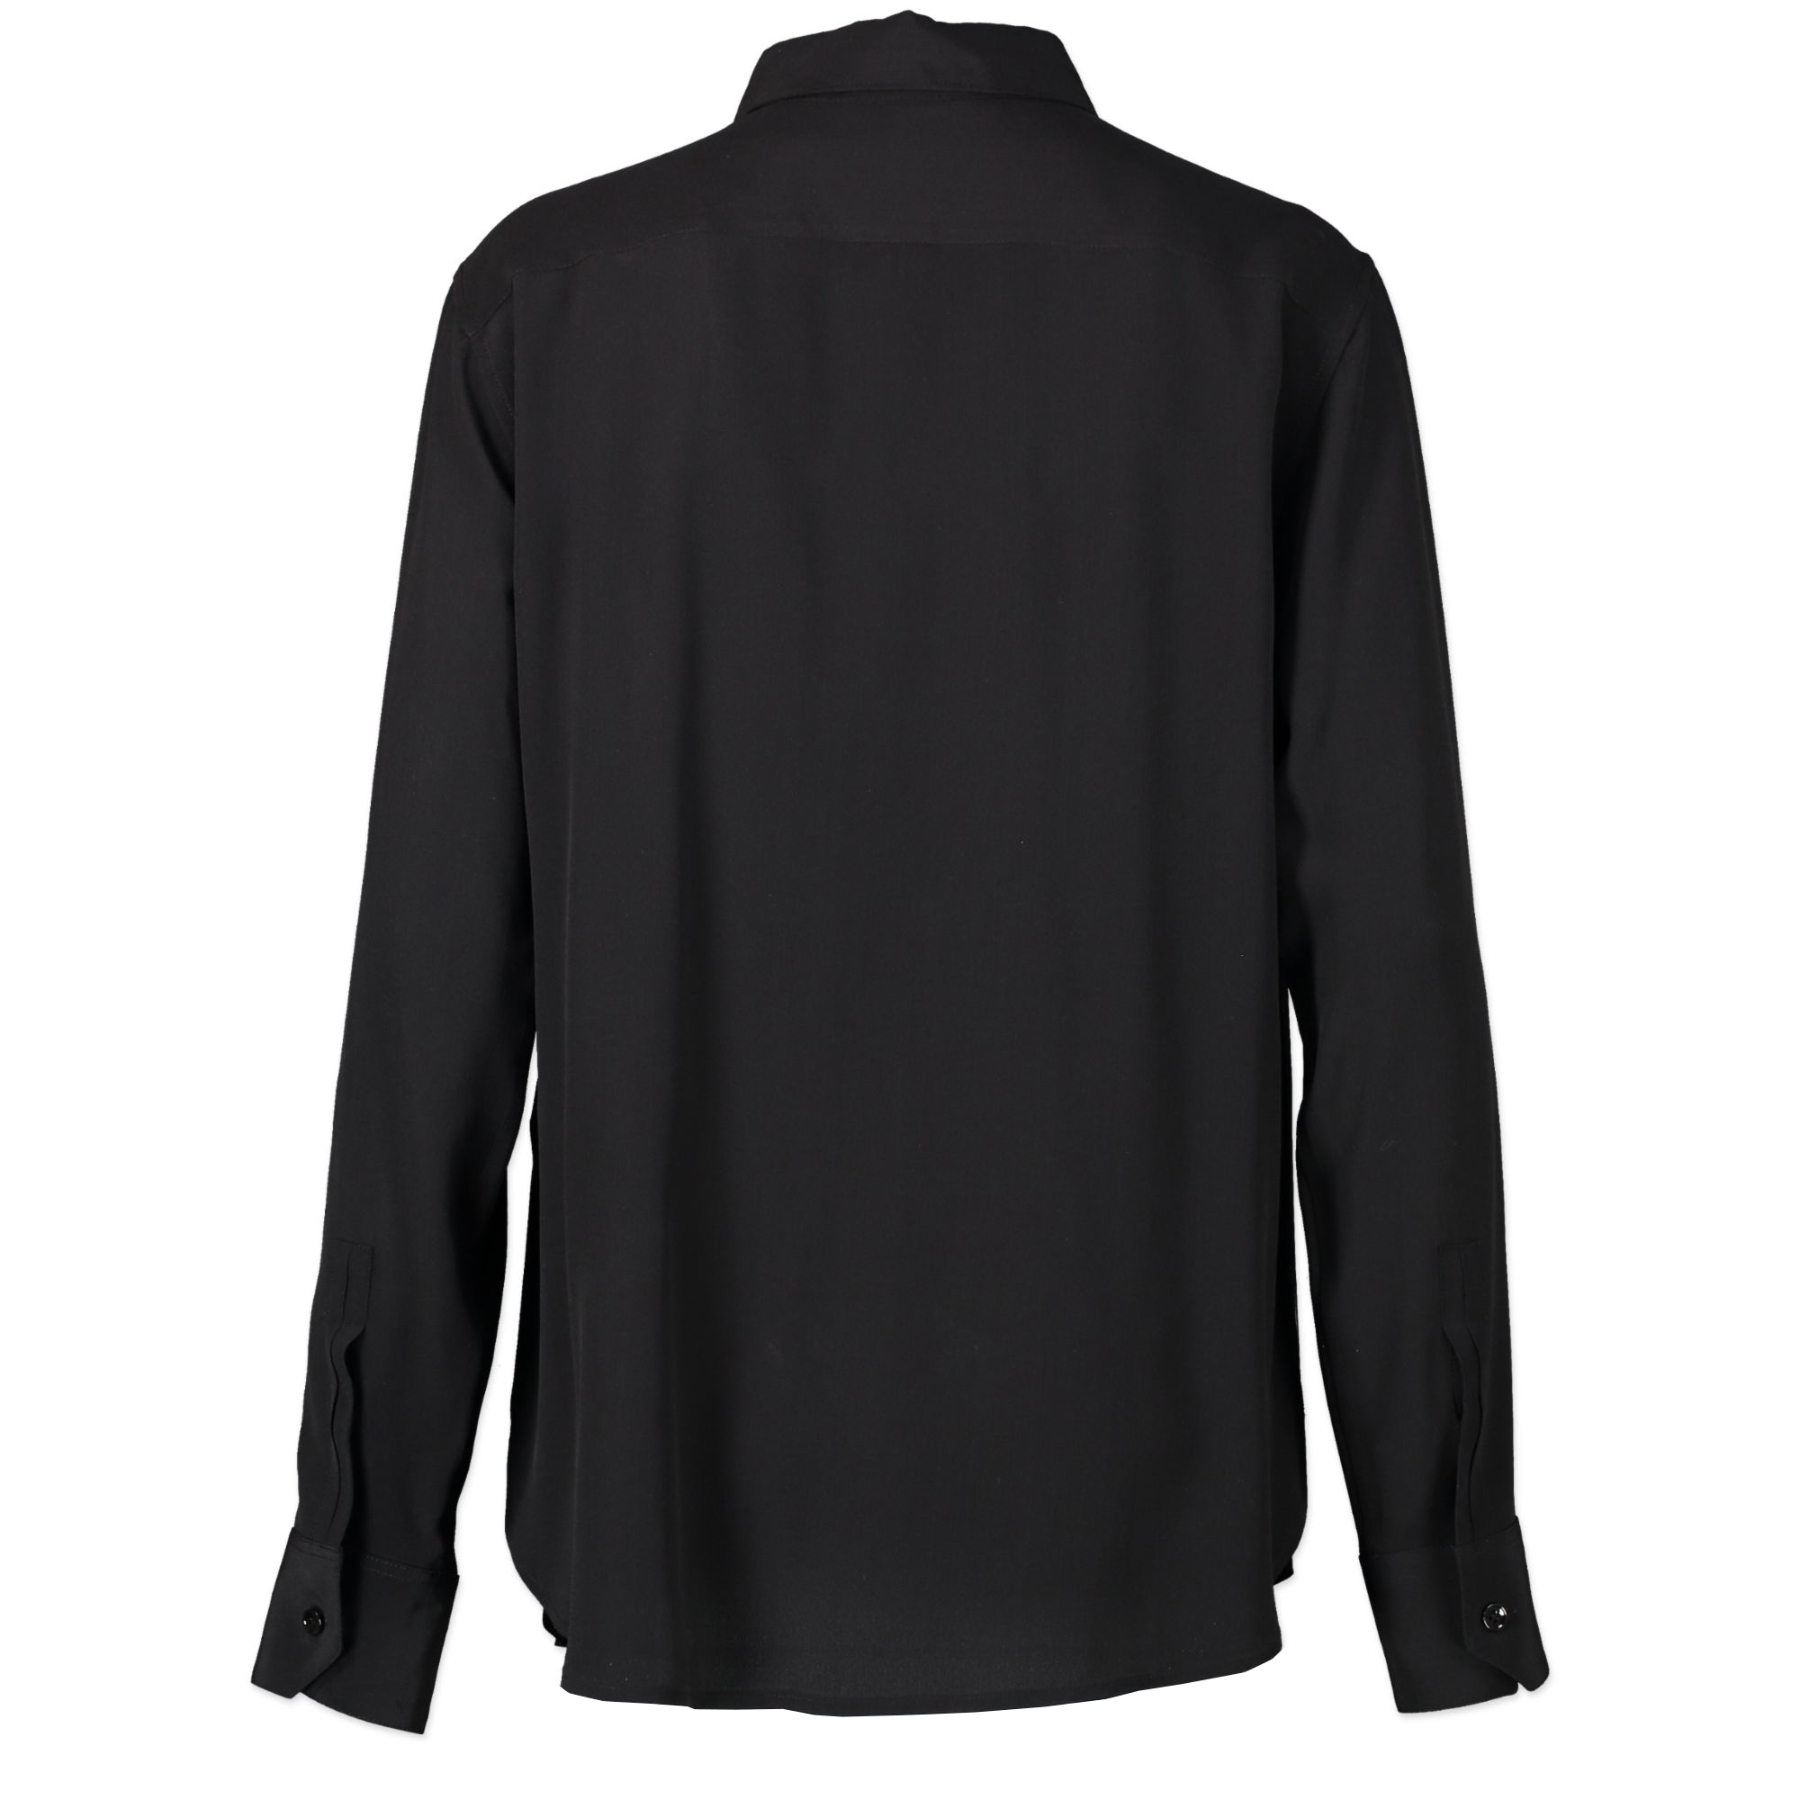 Authentic secondhand Saint Laurent Black Silk Blouse - FR42 designer clothing fashion luxury vintage webshop safe secure online shopping designer high end brands